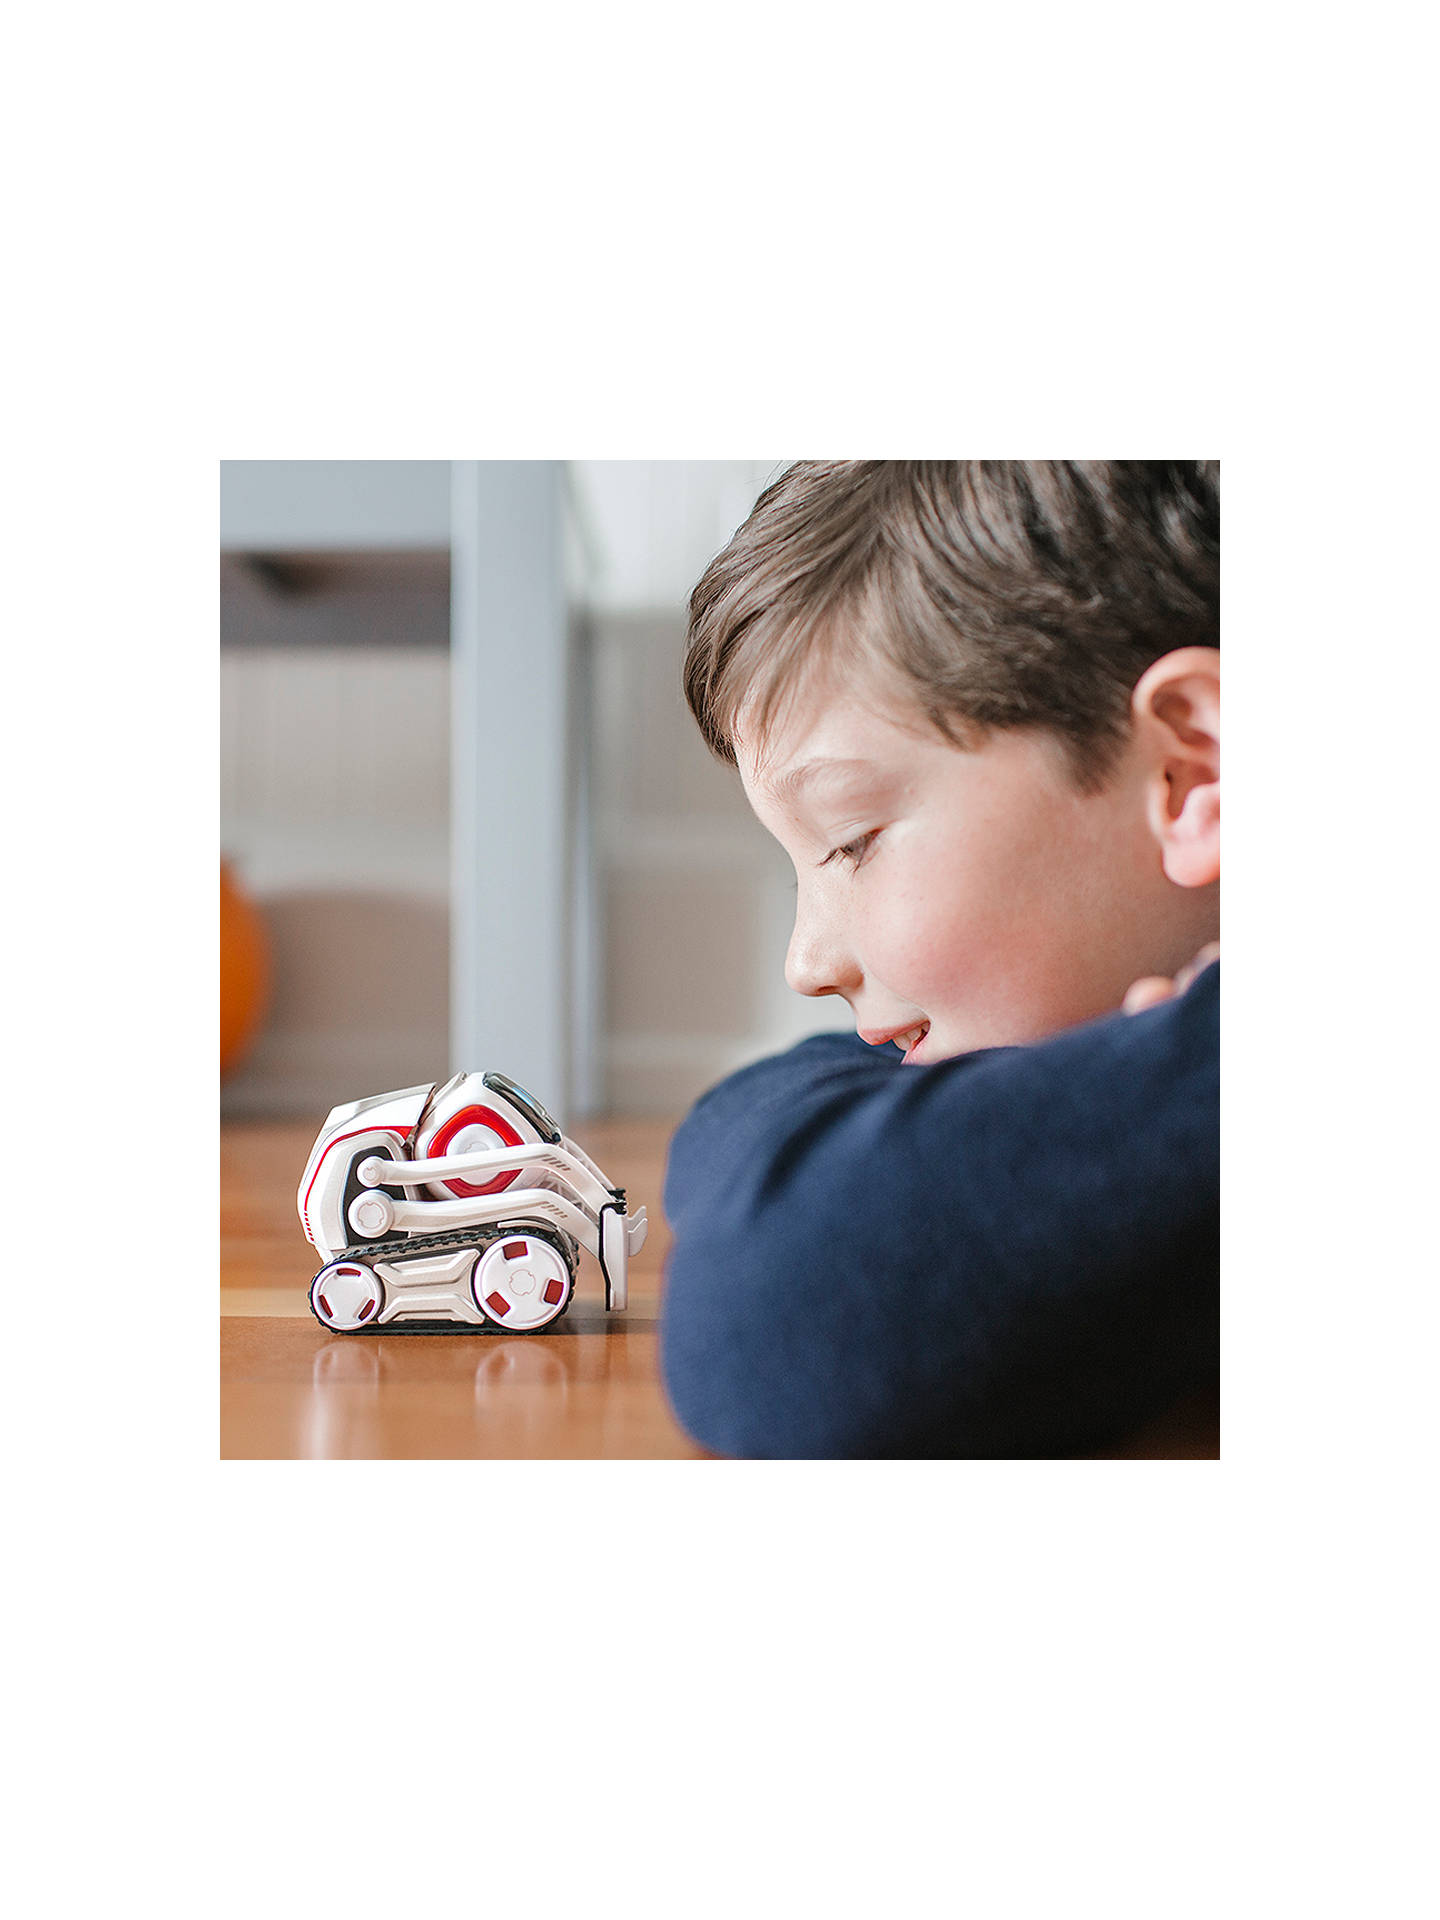 BuyAnki Cozmo Robot plus Create with Cozmo book (Bundle) Online at johnlewis.com